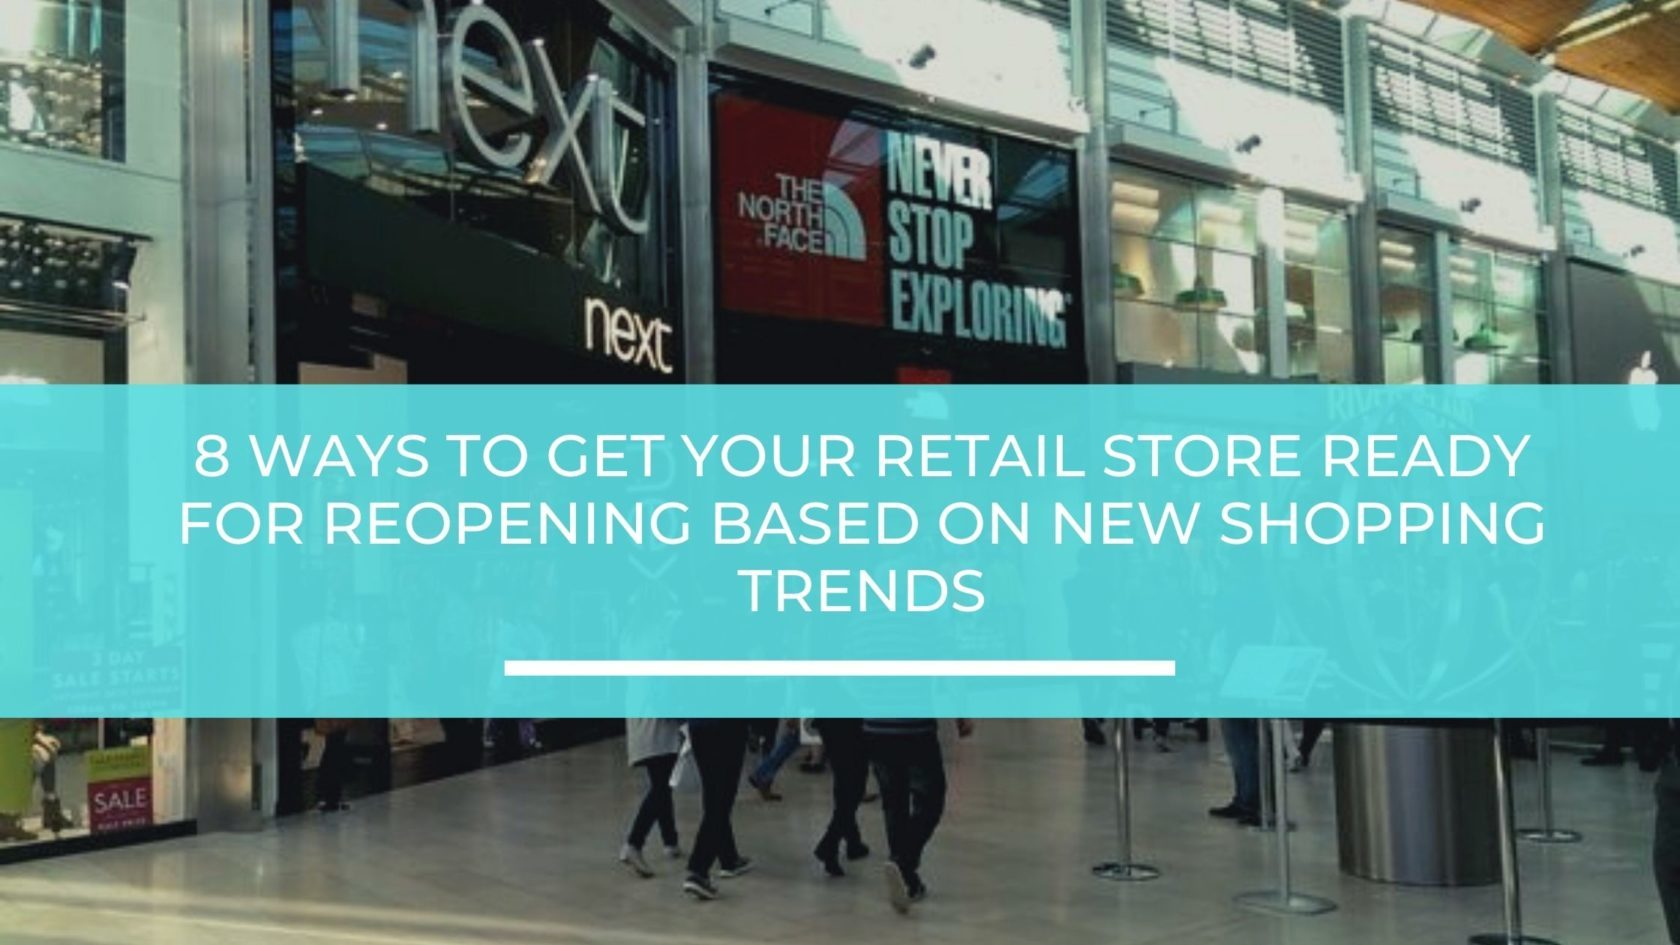 Non-essential retail roadmap to reopening